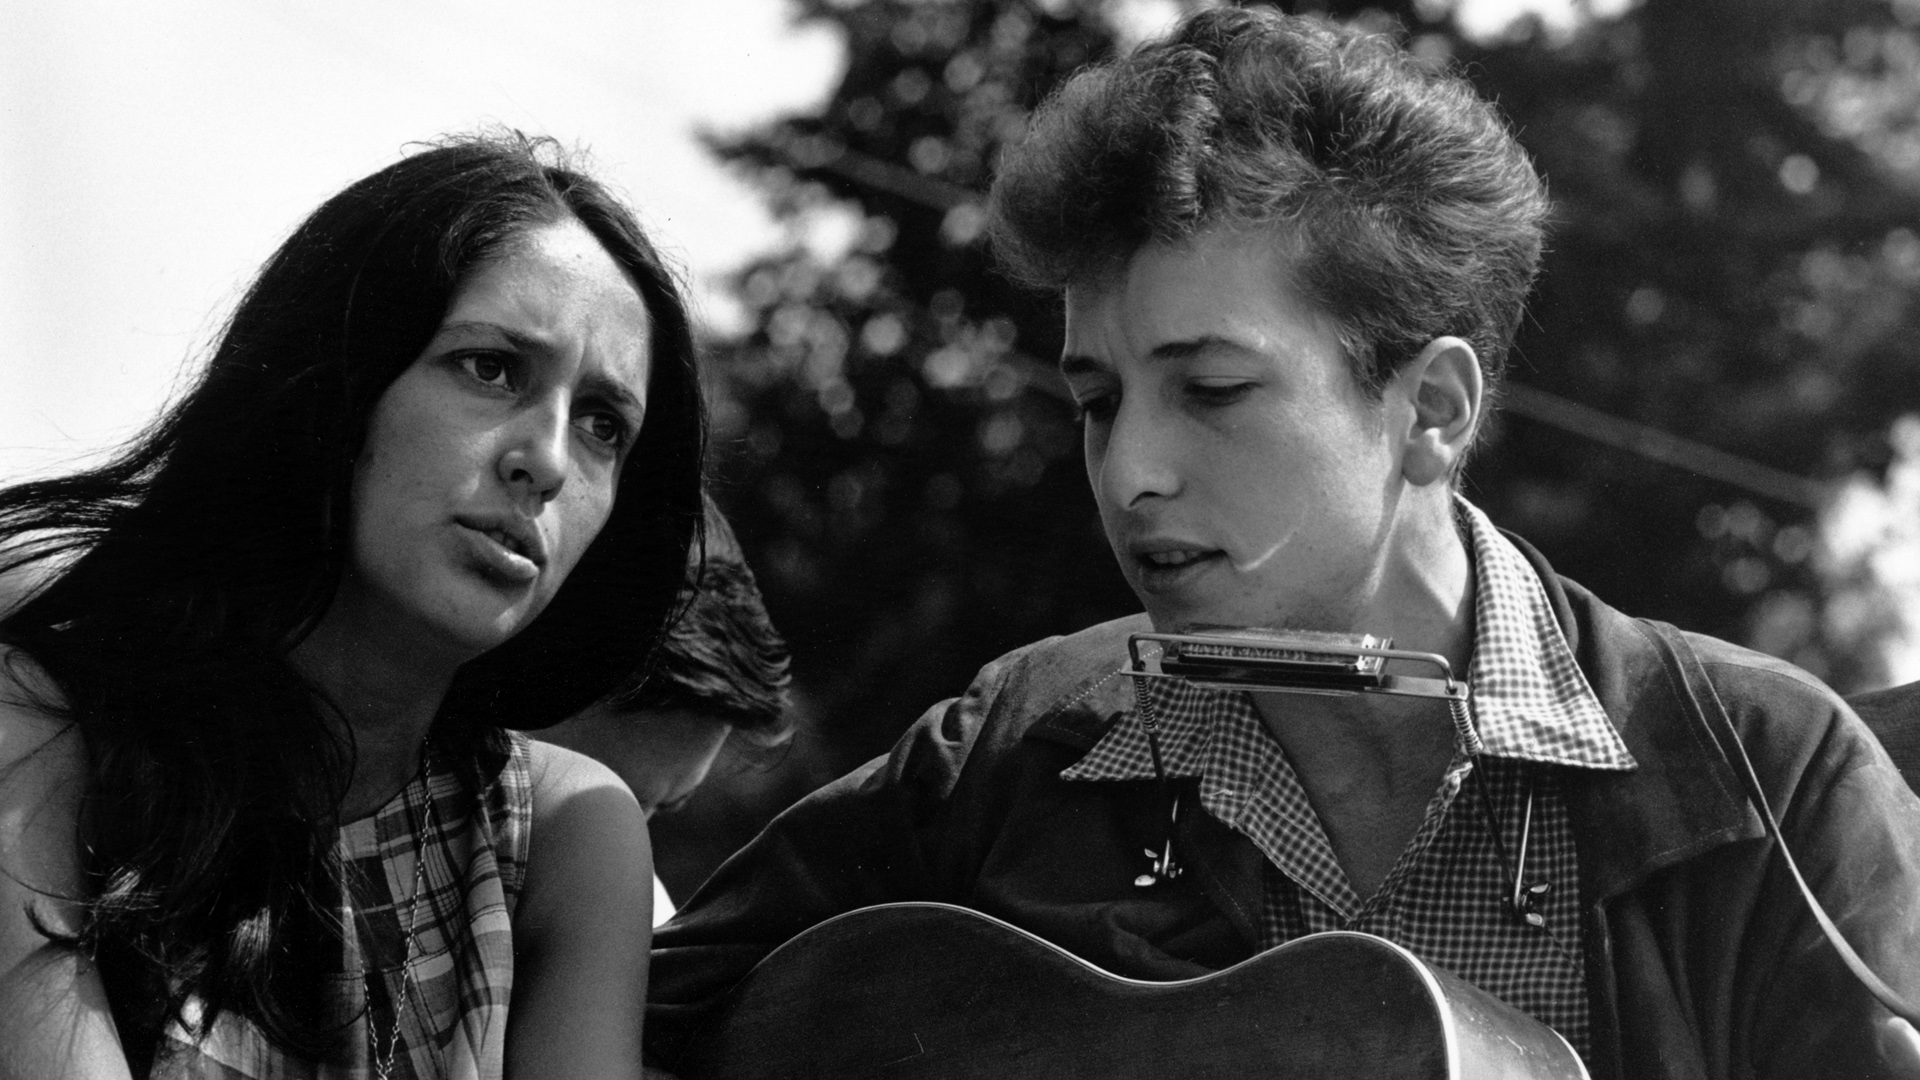 Bob-Dylan-Joan-Baez-oh-these-two-wallpaper-wpc9003118